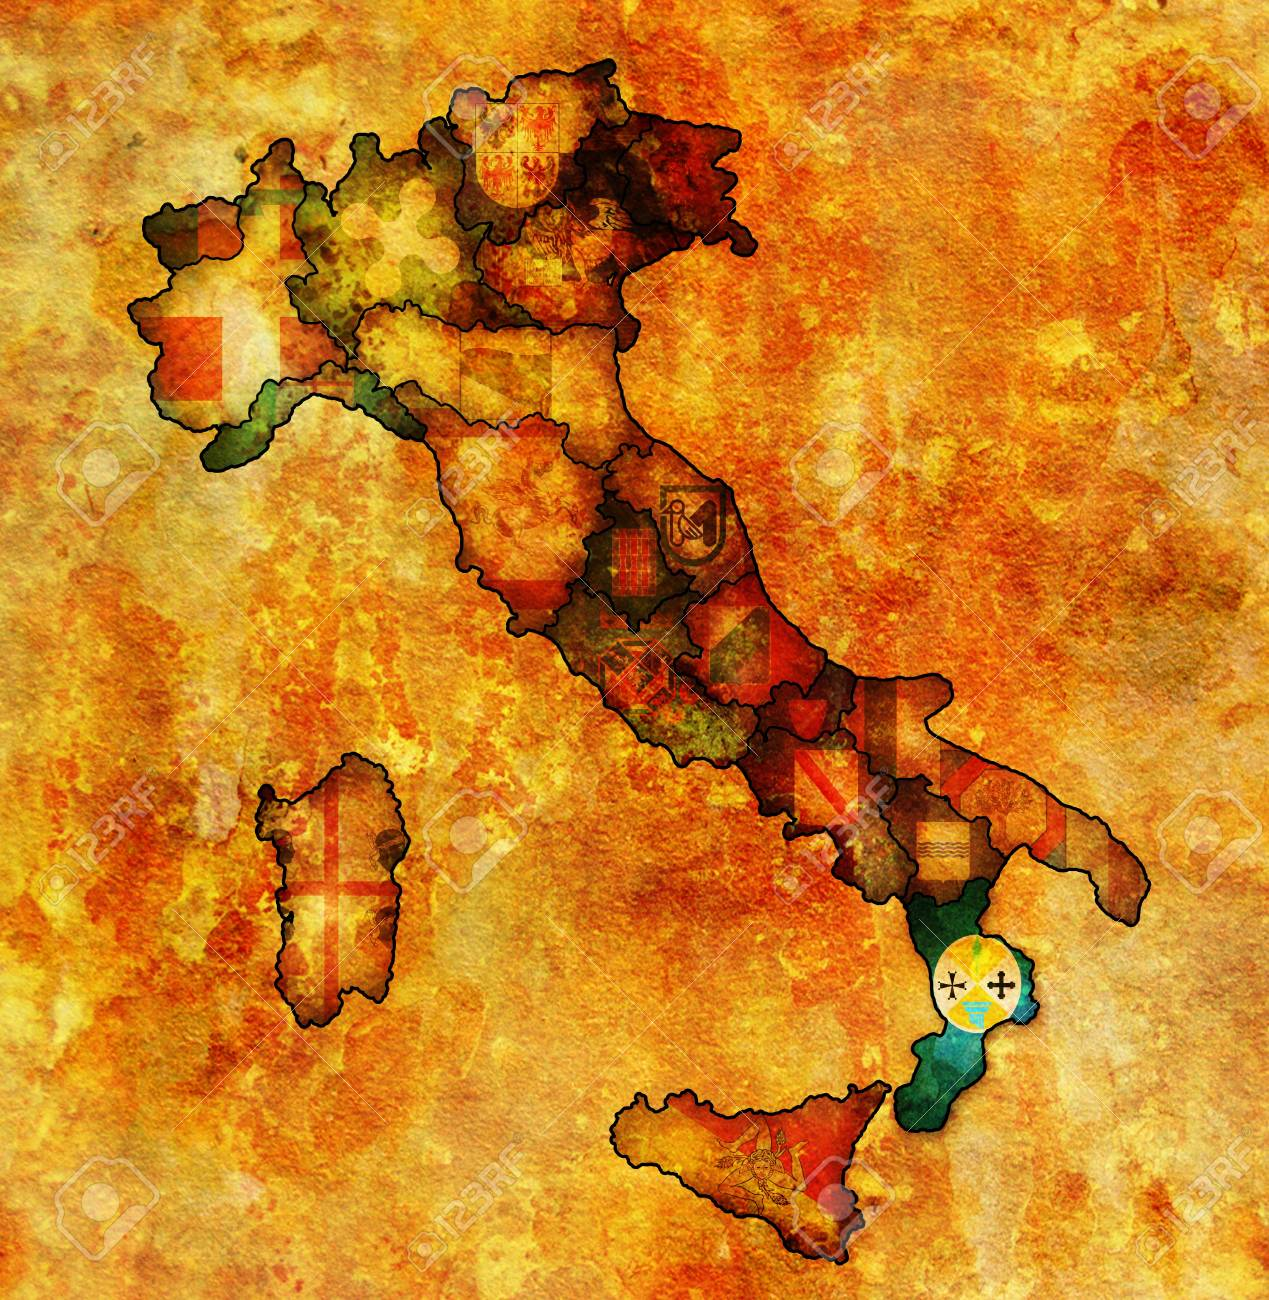 Map Of Italy Calabria Region.Calabria Region On Administration Map Of Italy With Flags Stock